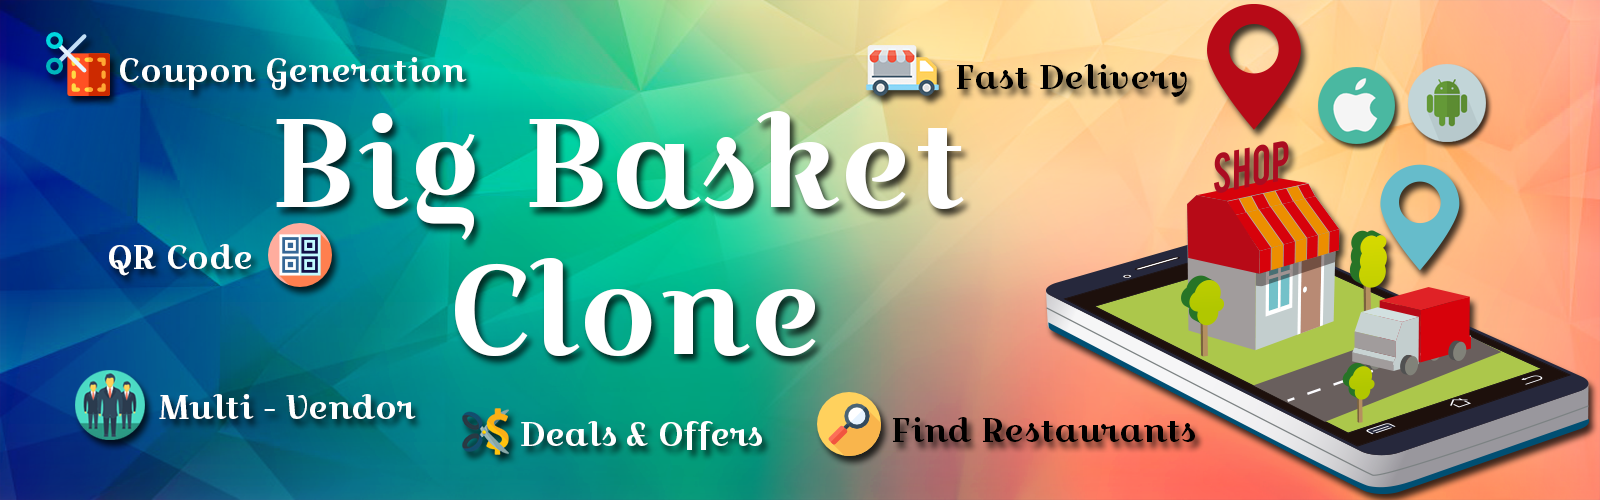 Big Basket Clone banner